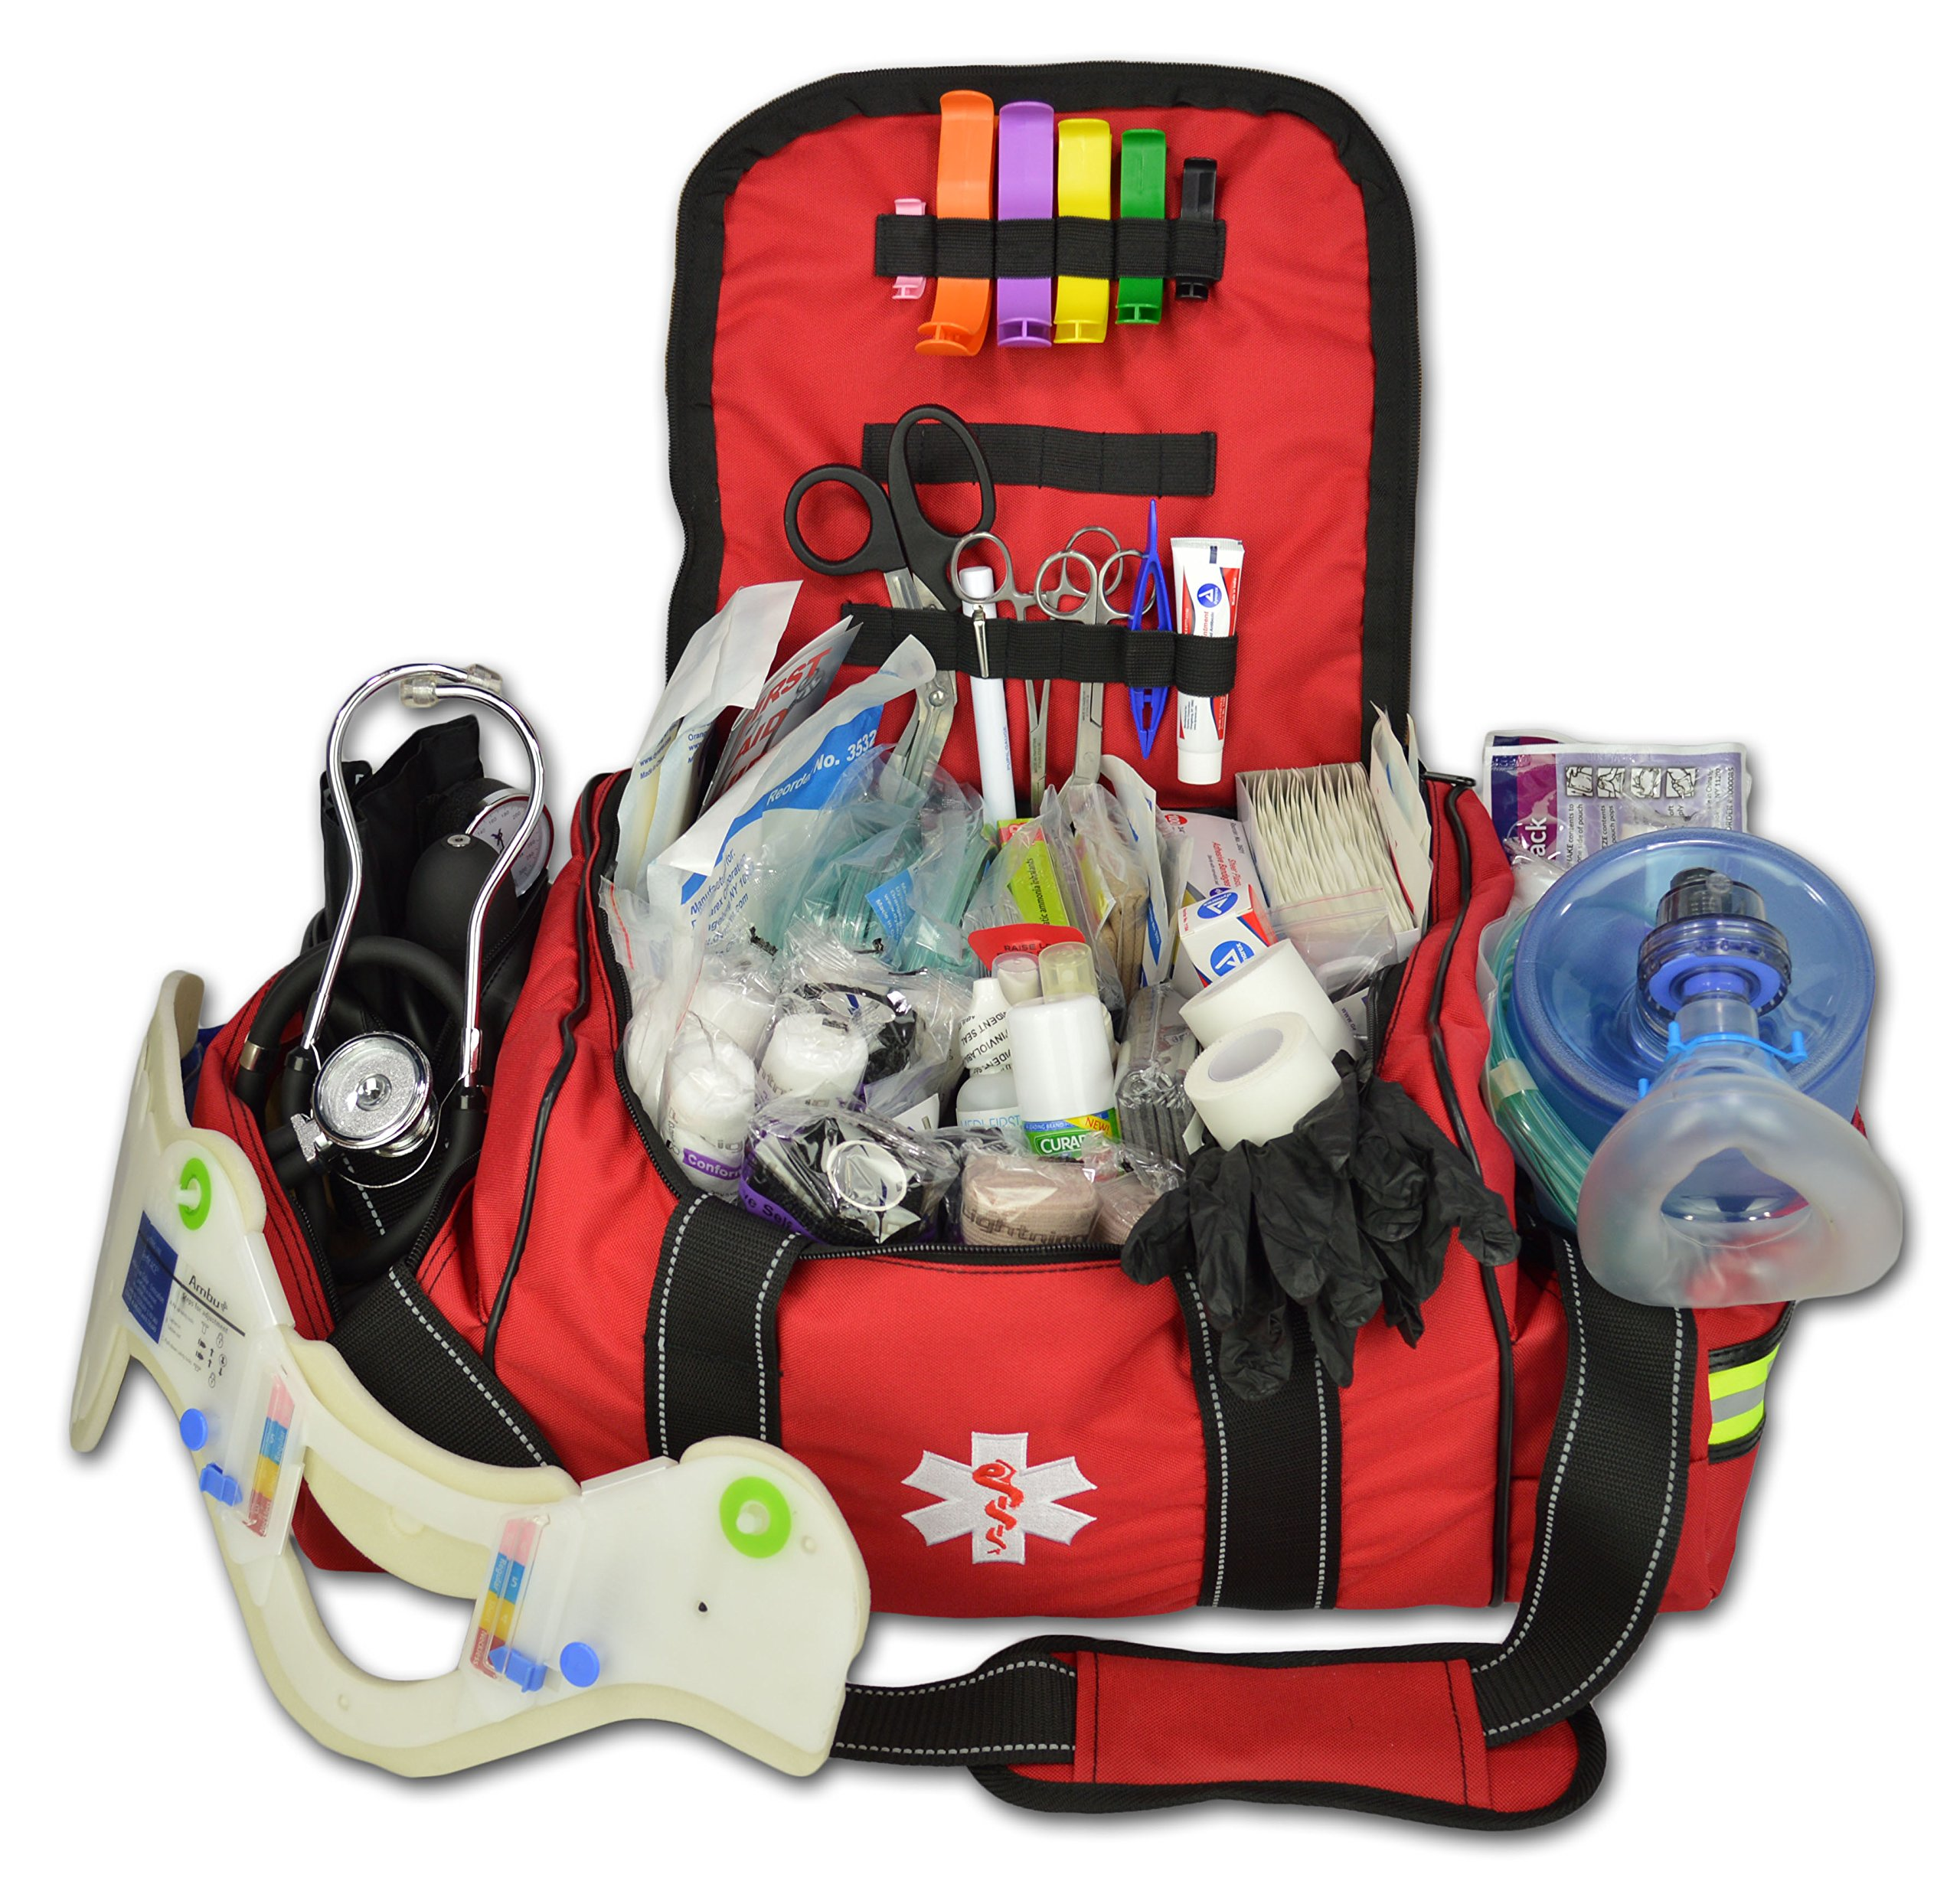 Deluxe Stocked Large EMT First Aid Trauma Bag Fill Kit w/Emergency Medical Supplies